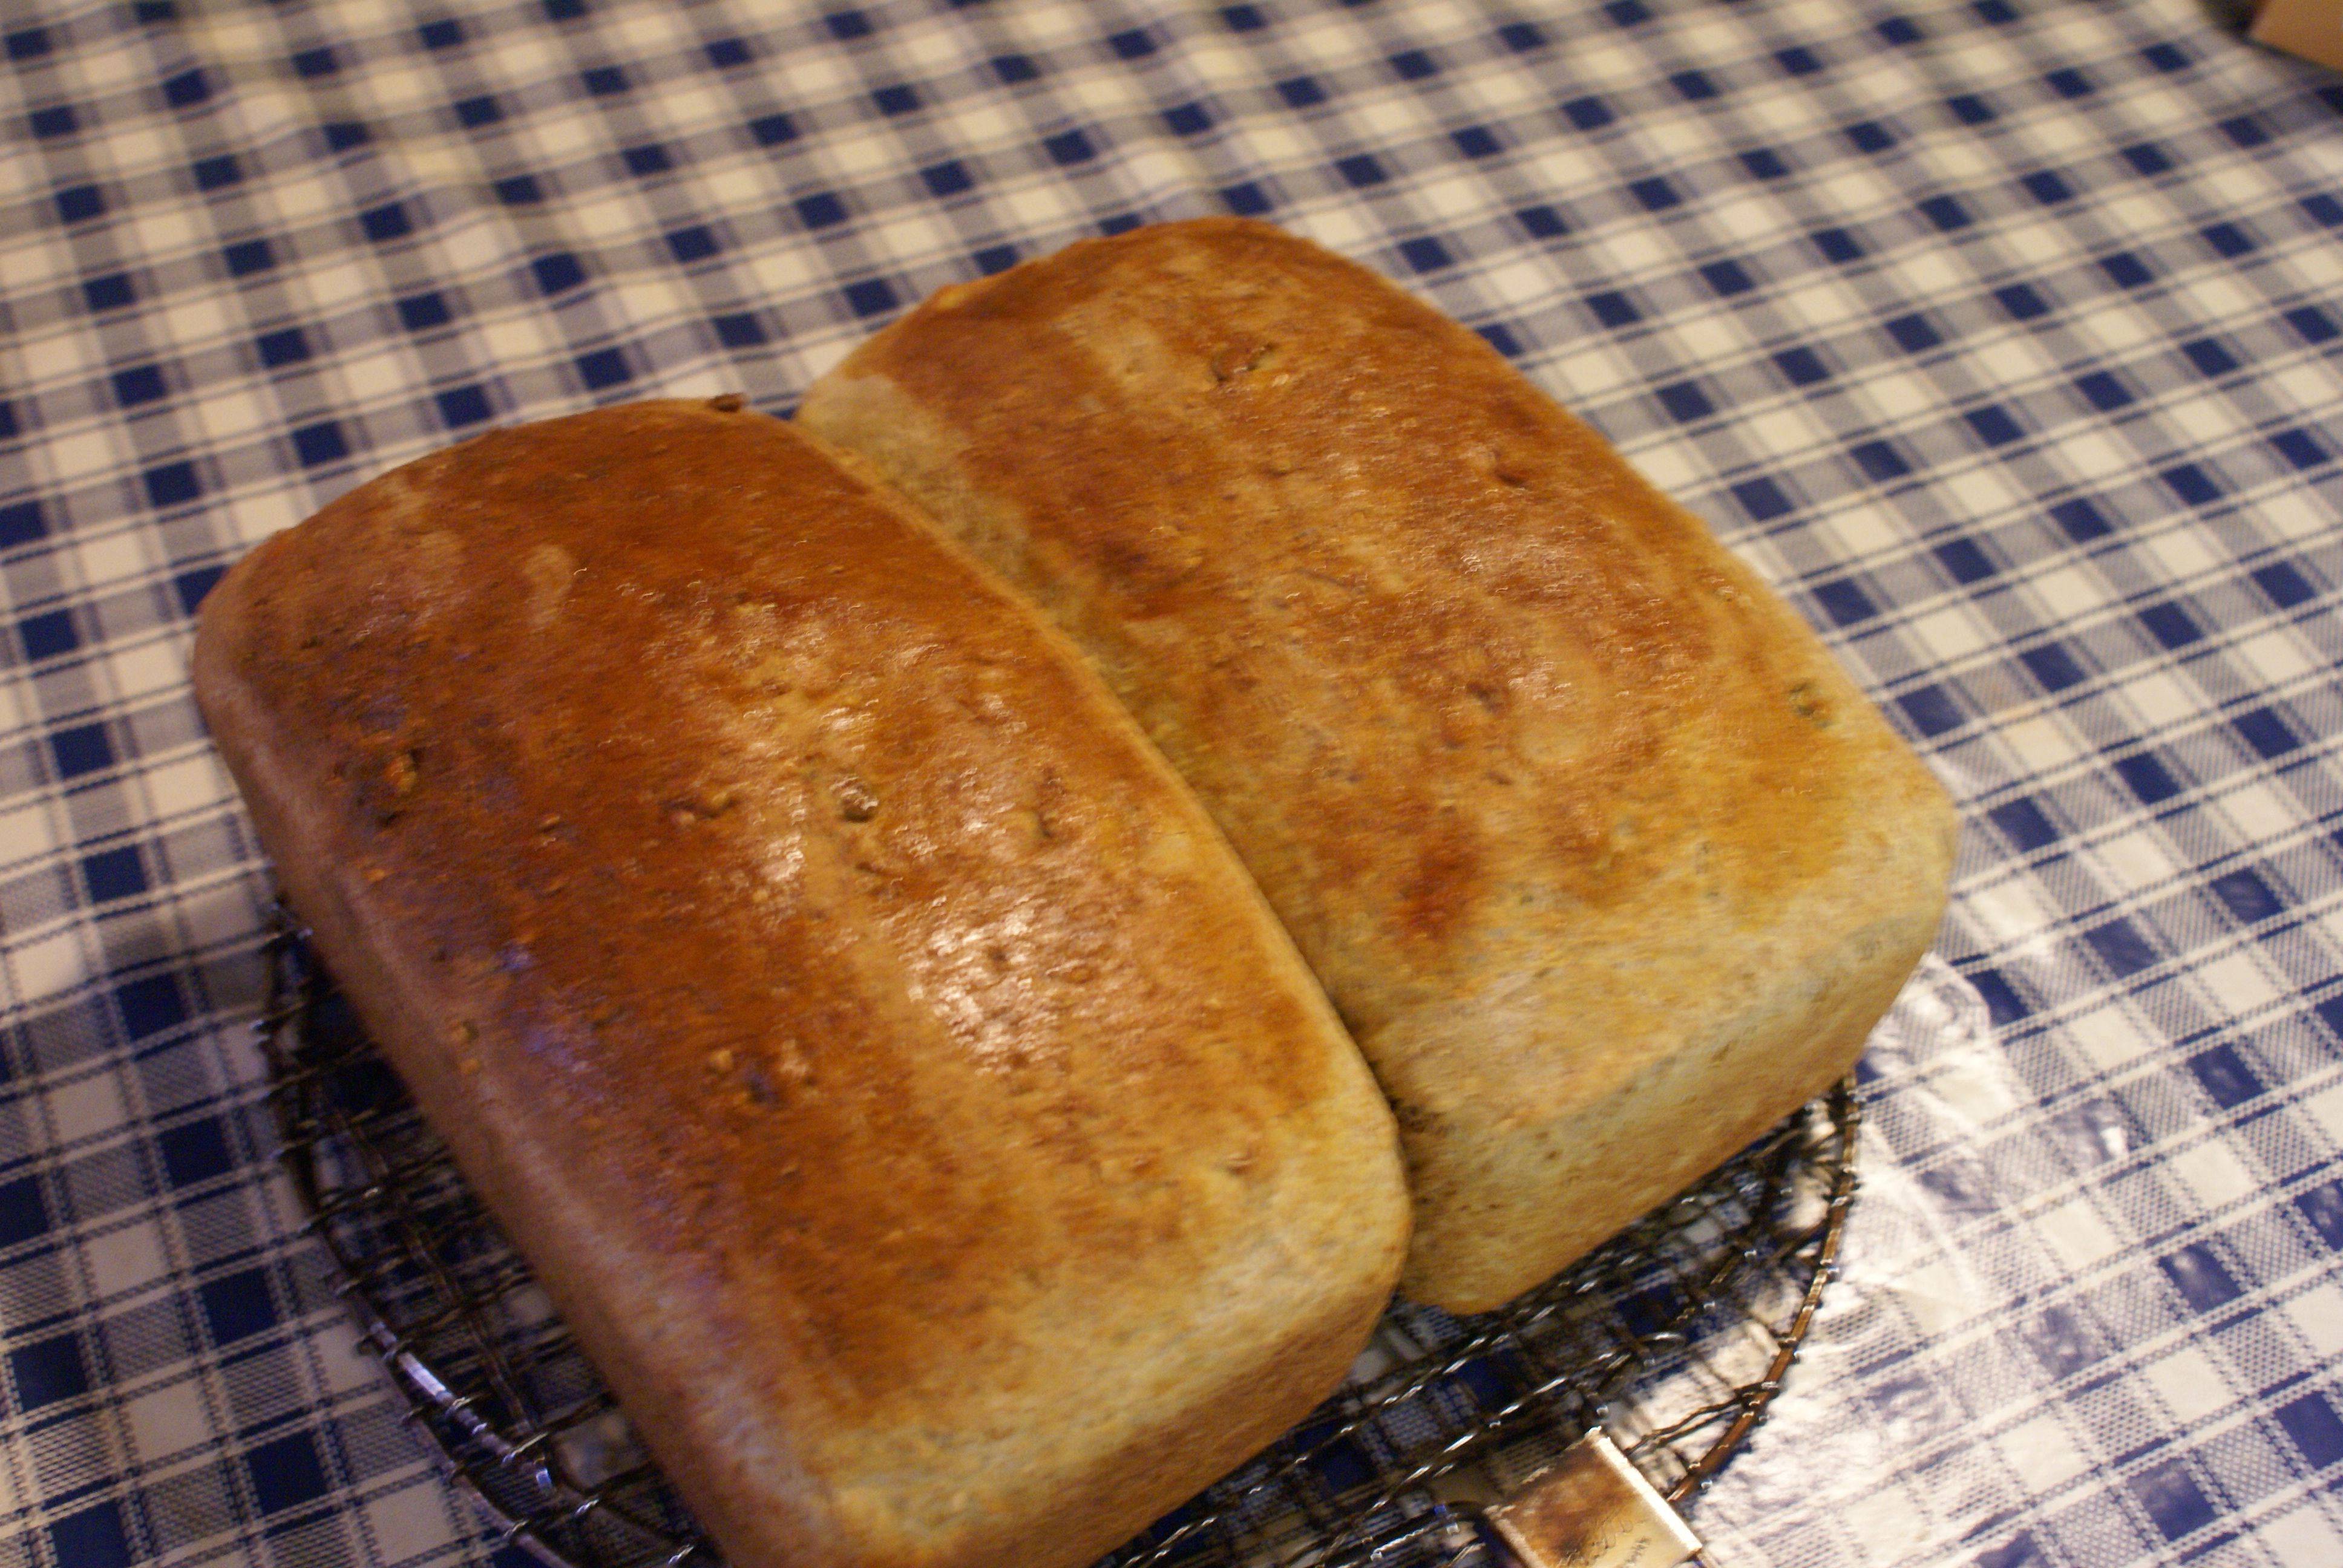 Bread made in the Aga - enjoy it for yourself at Handley Farm